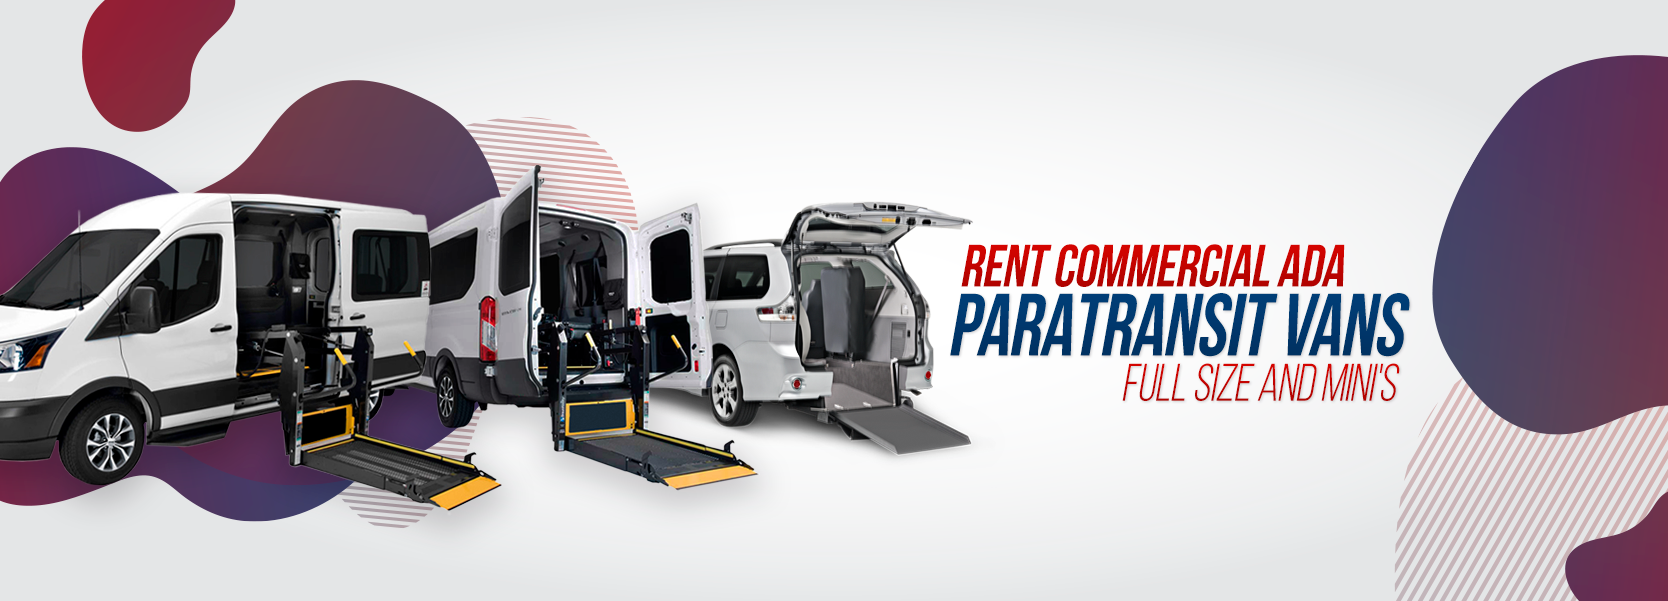 ♿ Van Products | Wheelchair Vans | Mobility Products